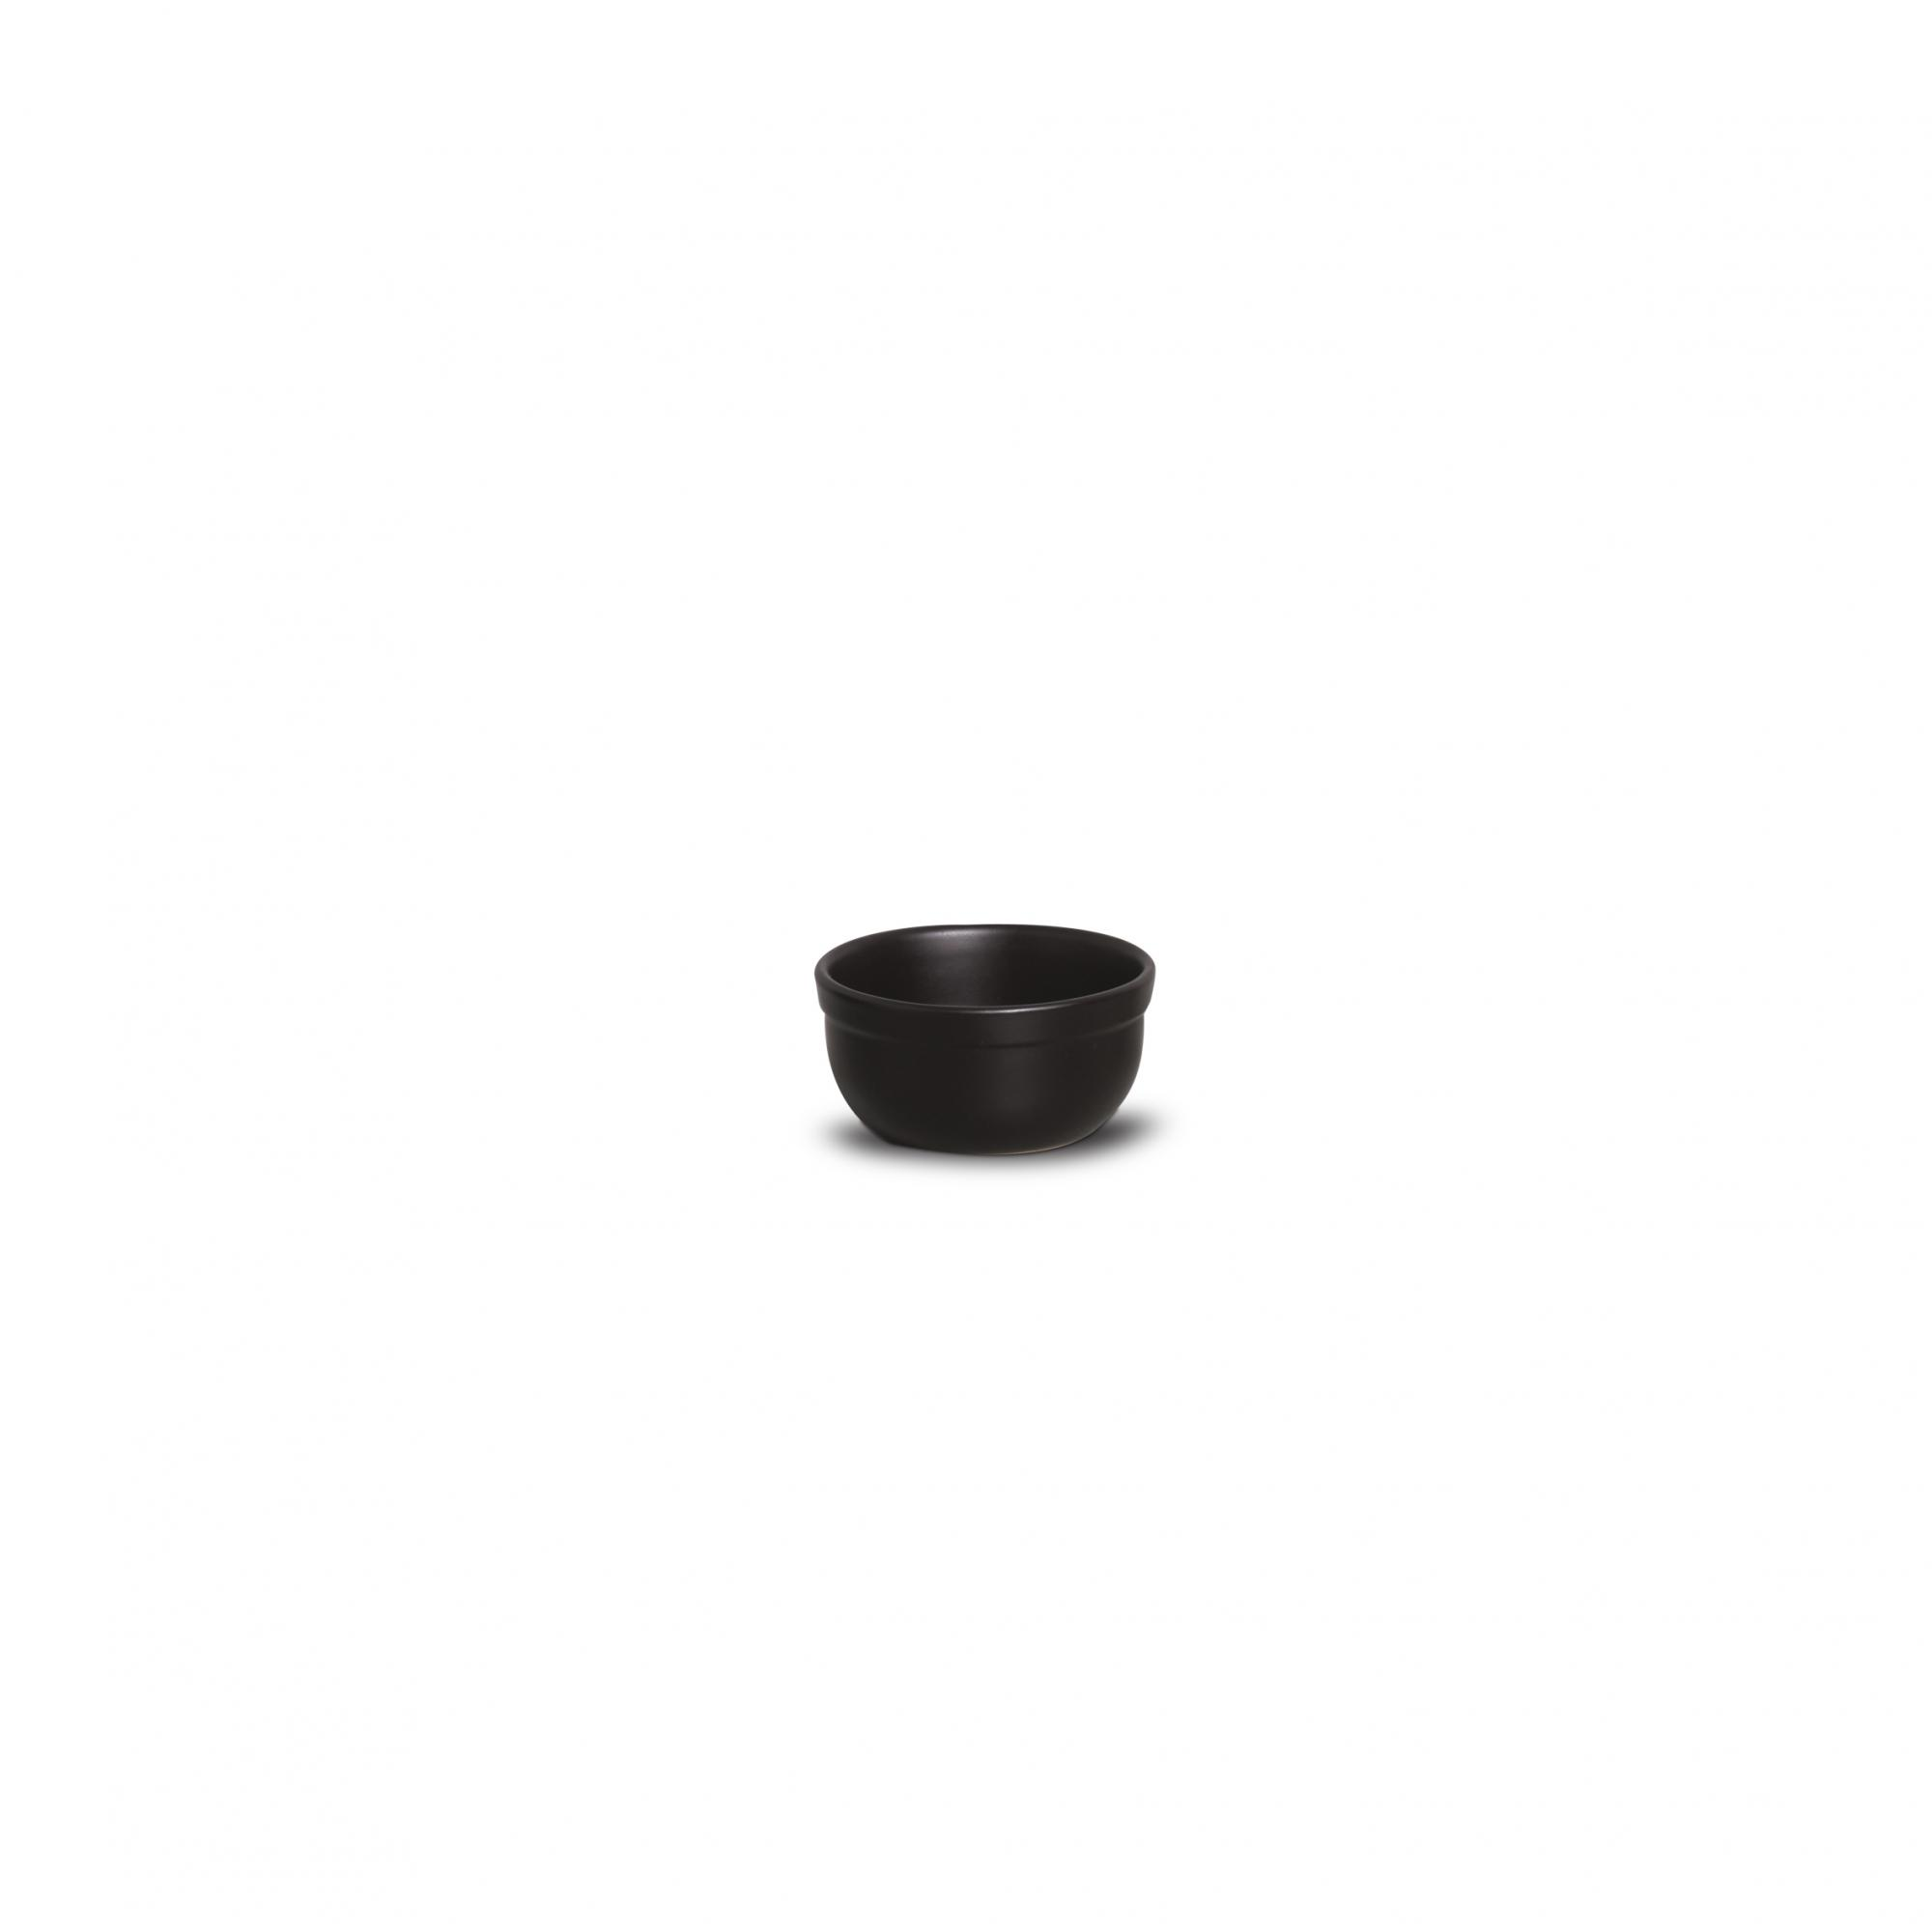 BOWL PP  350ml - PRETO FOSCO